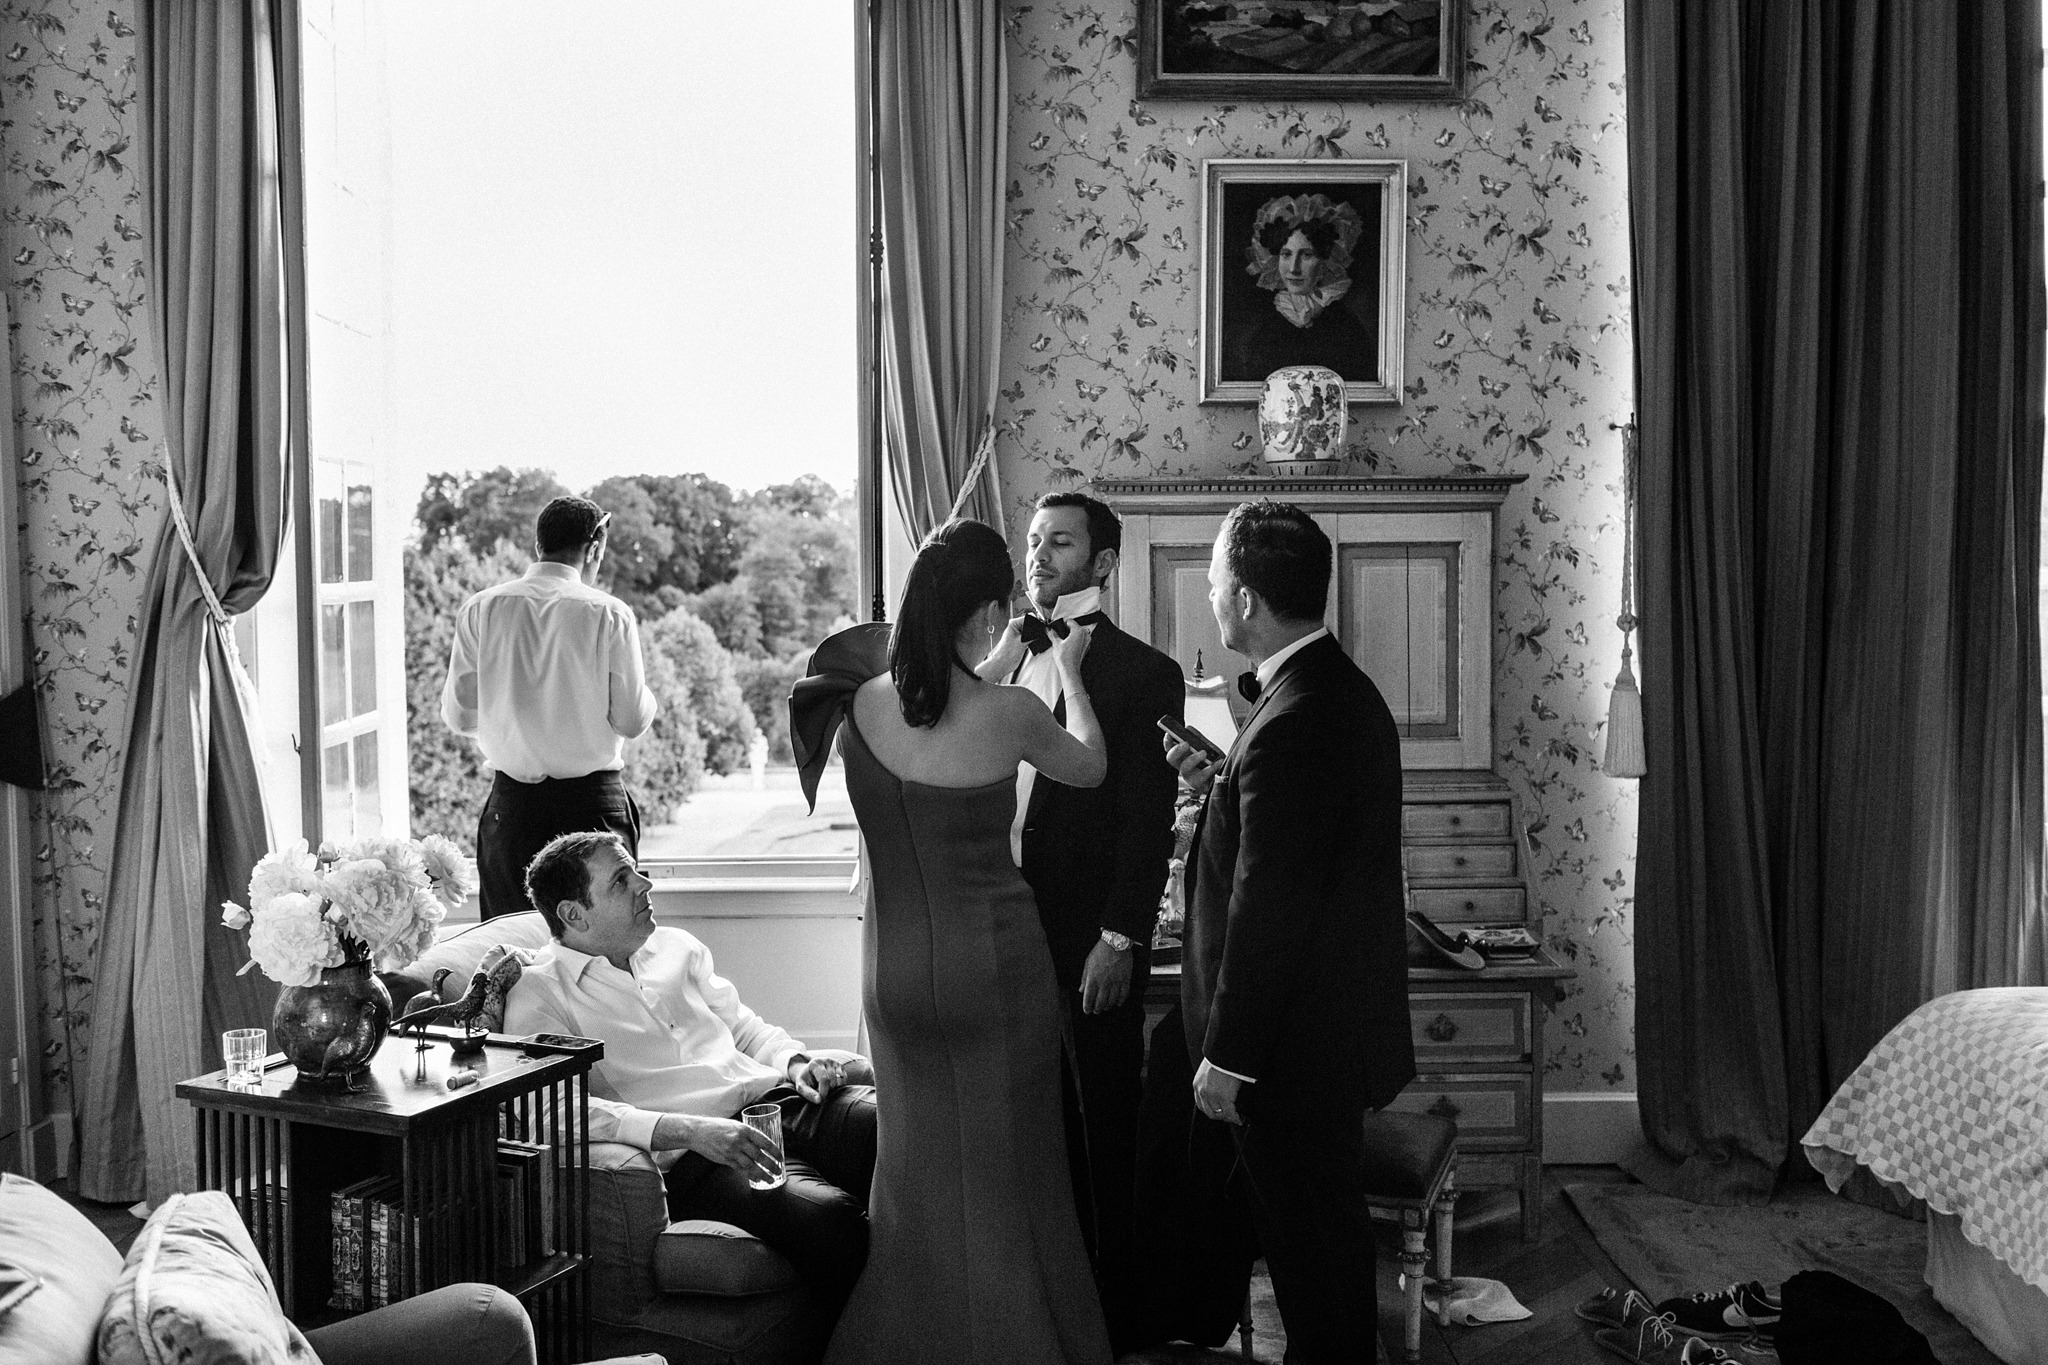 chateau-wedding-france-chanel-eric-as-seen-on-vogue-with-sarah-falugo-photographer_0056